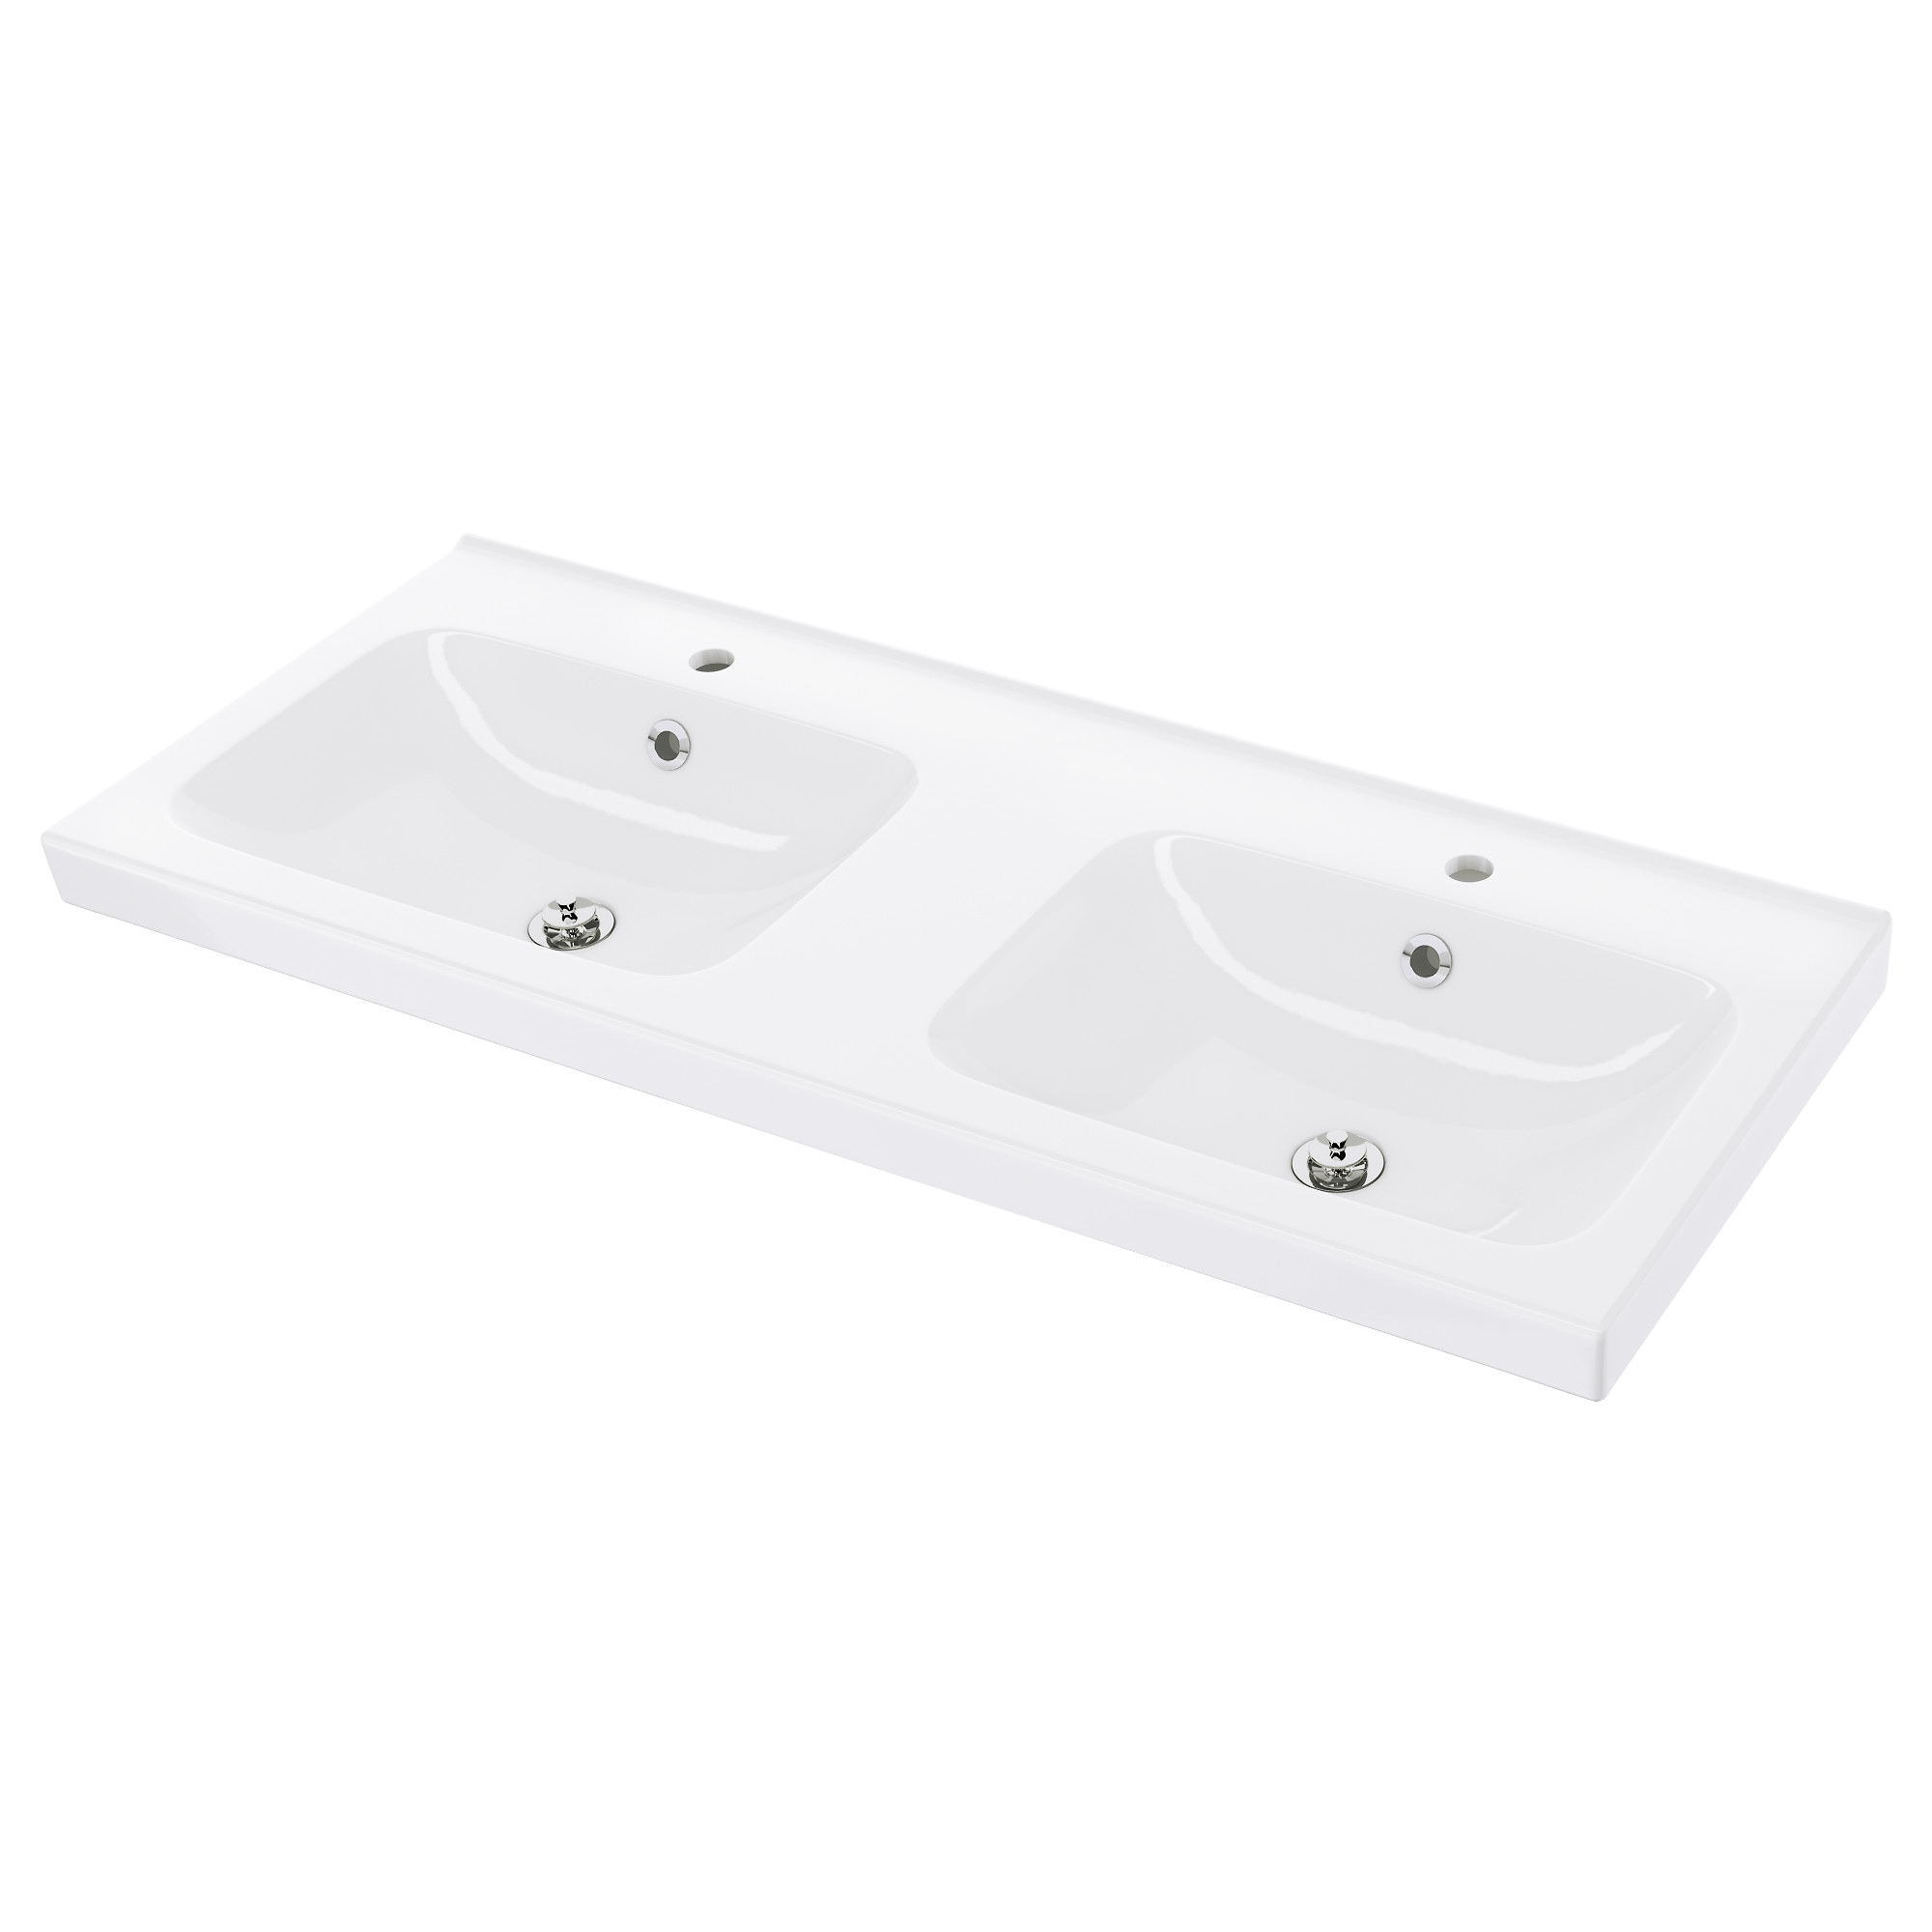 "ODENSVIK Double bowl sink 47 1 4x19 1 4x2 3 8 "" IKEA"